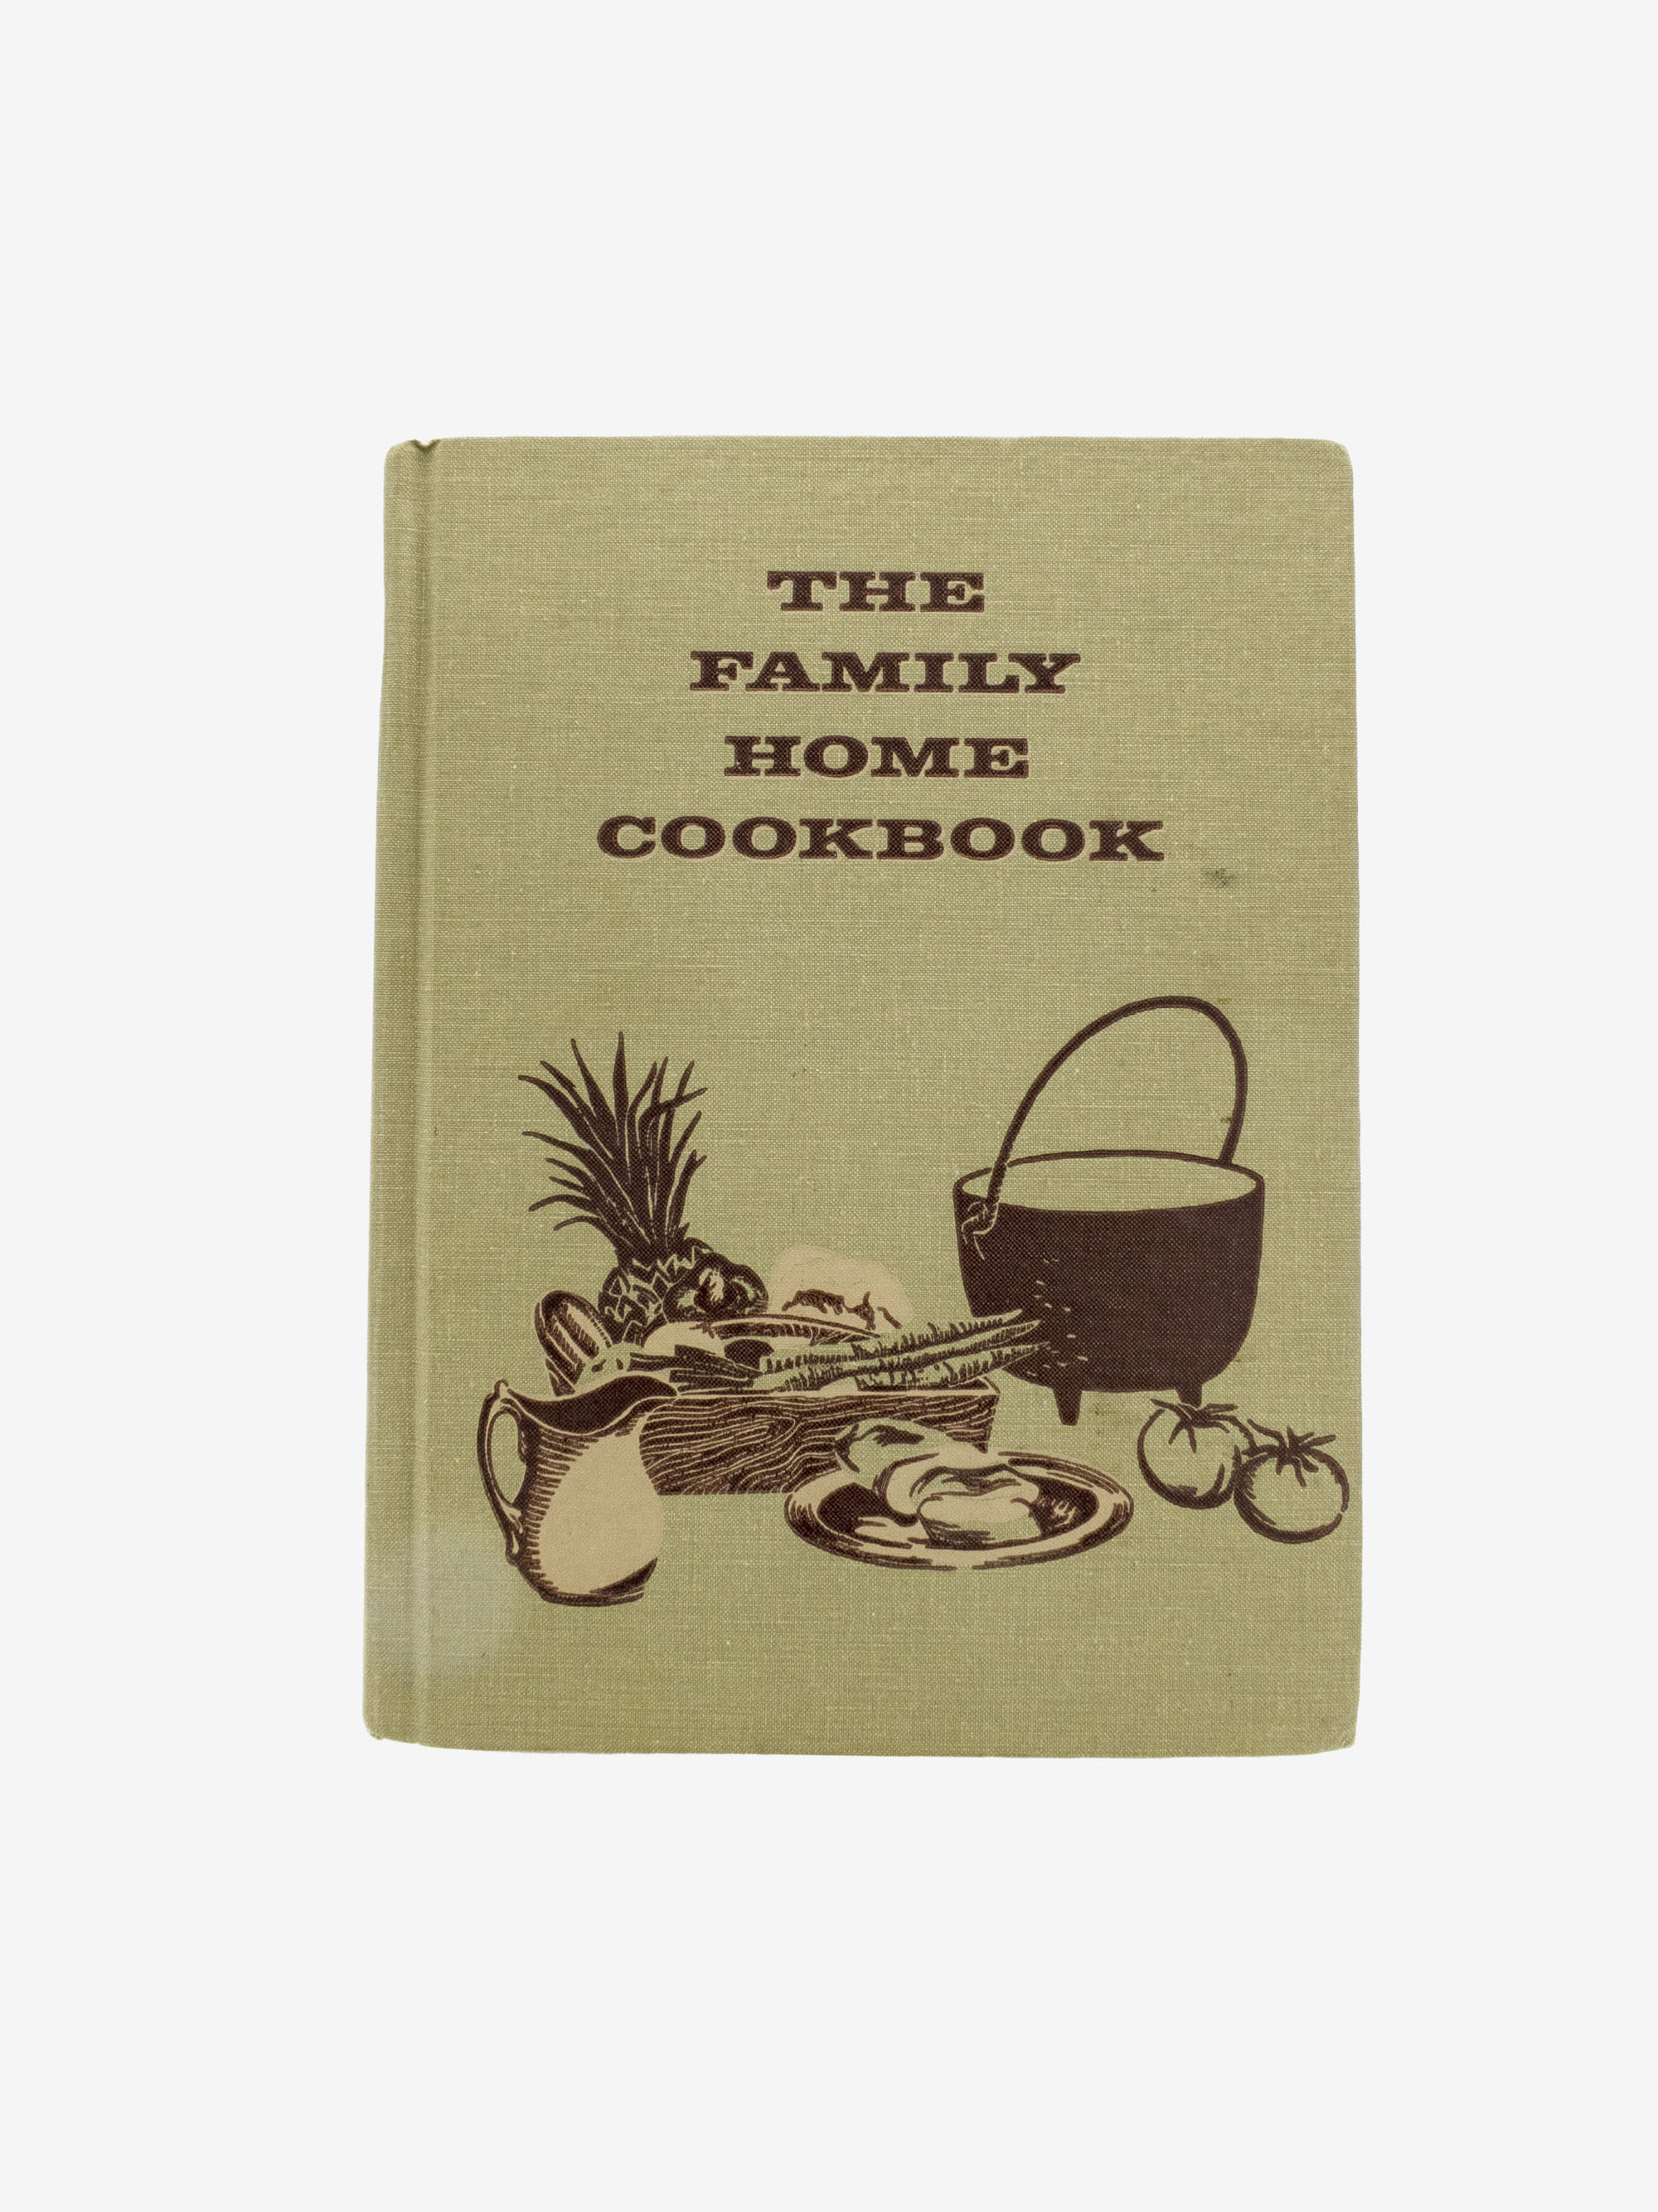 COOKBOOK The Family Home Cookbook